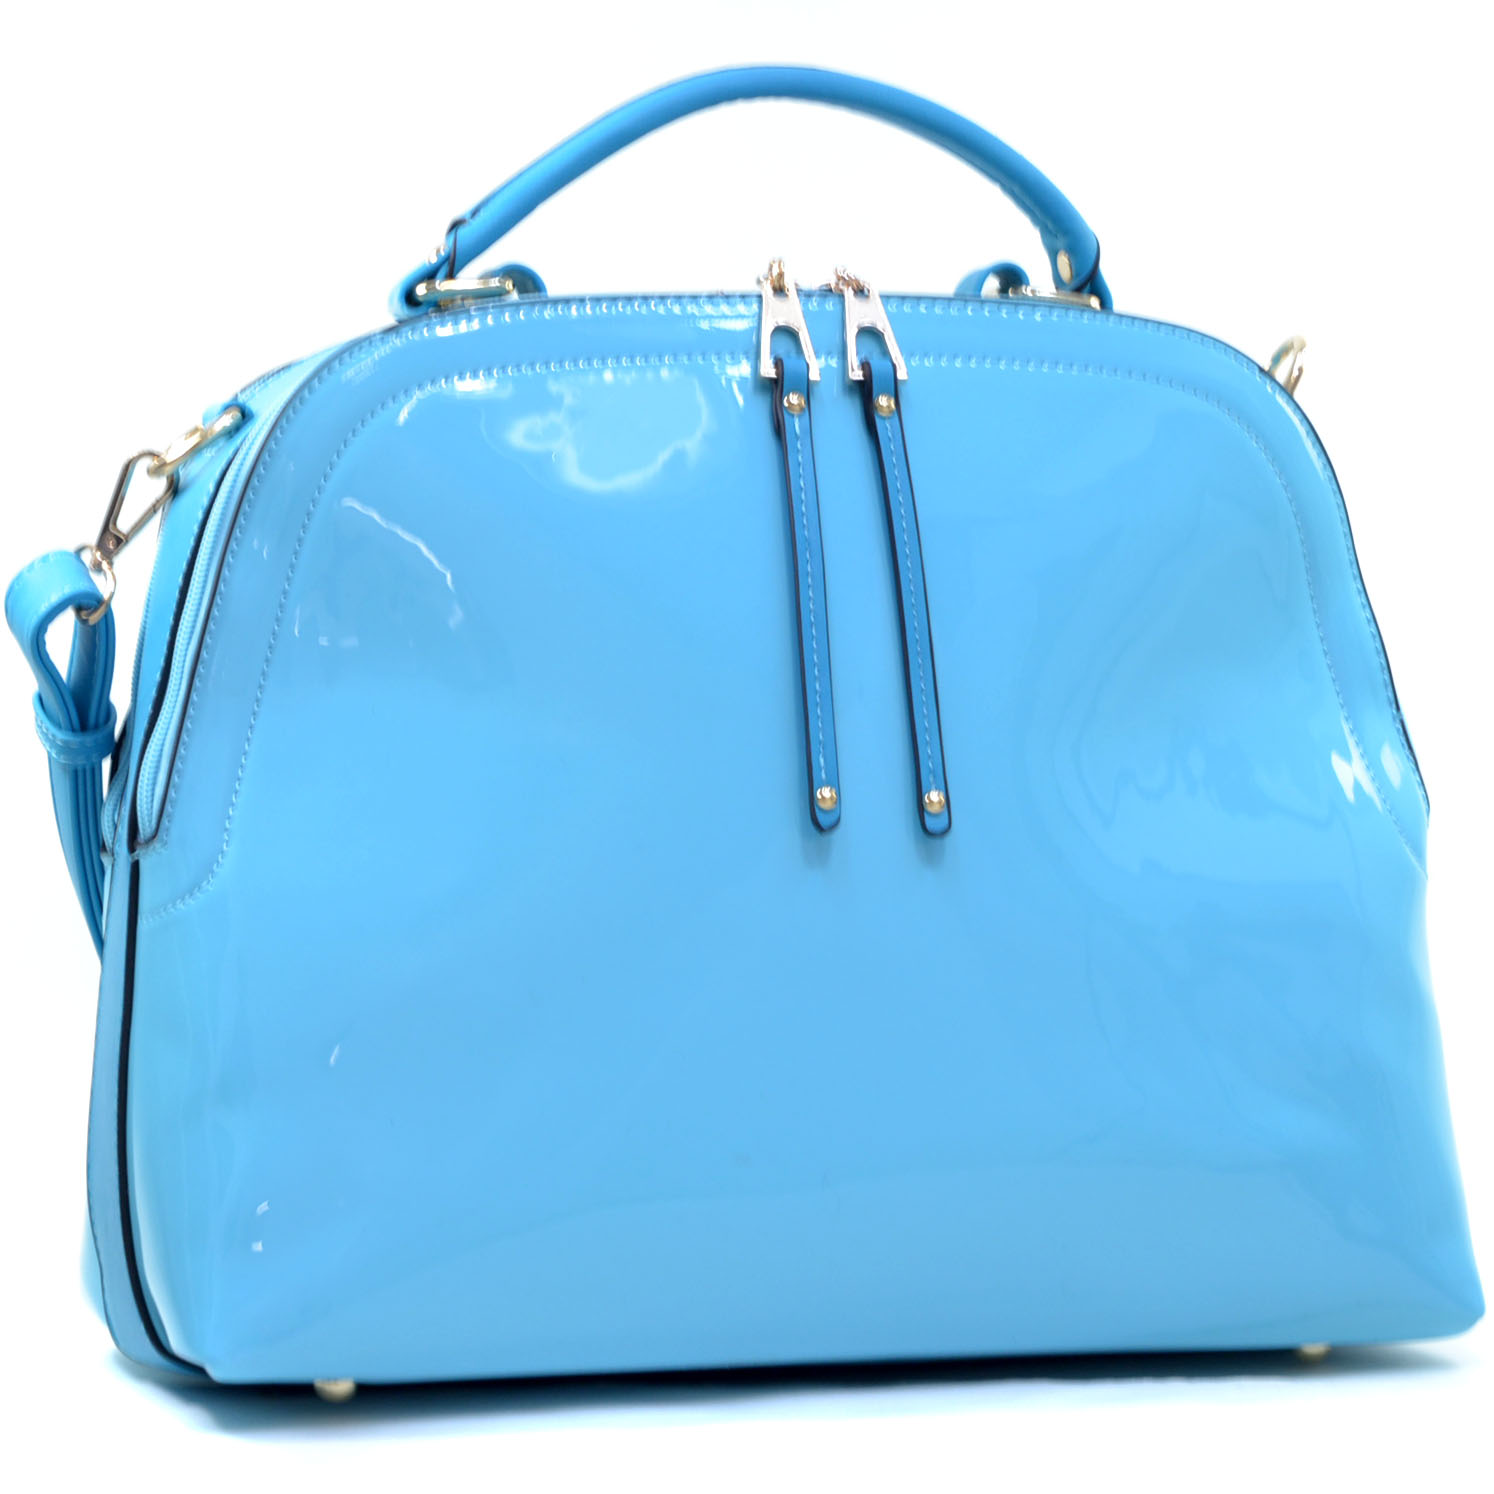 Patent Faux Leather Dome Satchel with Shoulder Strap